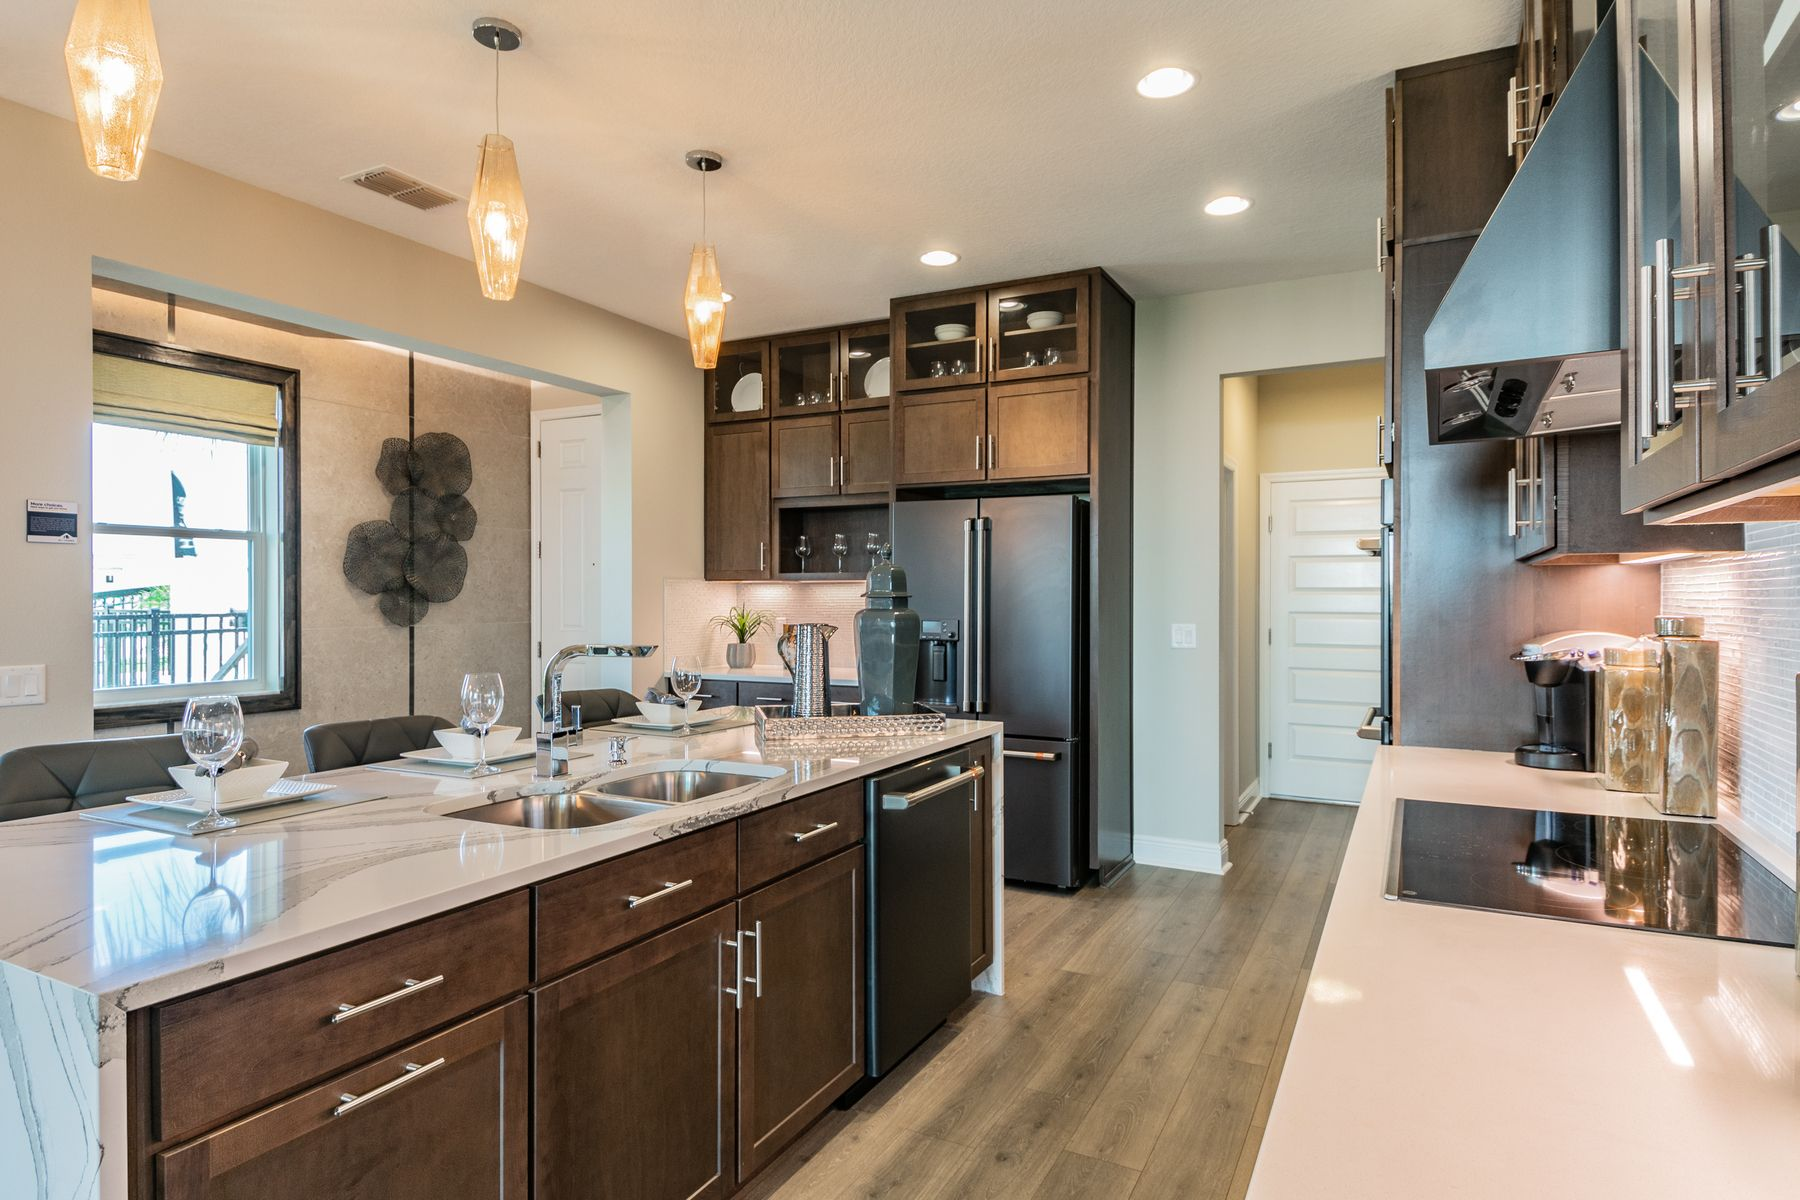 Kitchen featured in the Devonshire II Coastal By M/I Homes in Tampa-St. Petersburg, FL